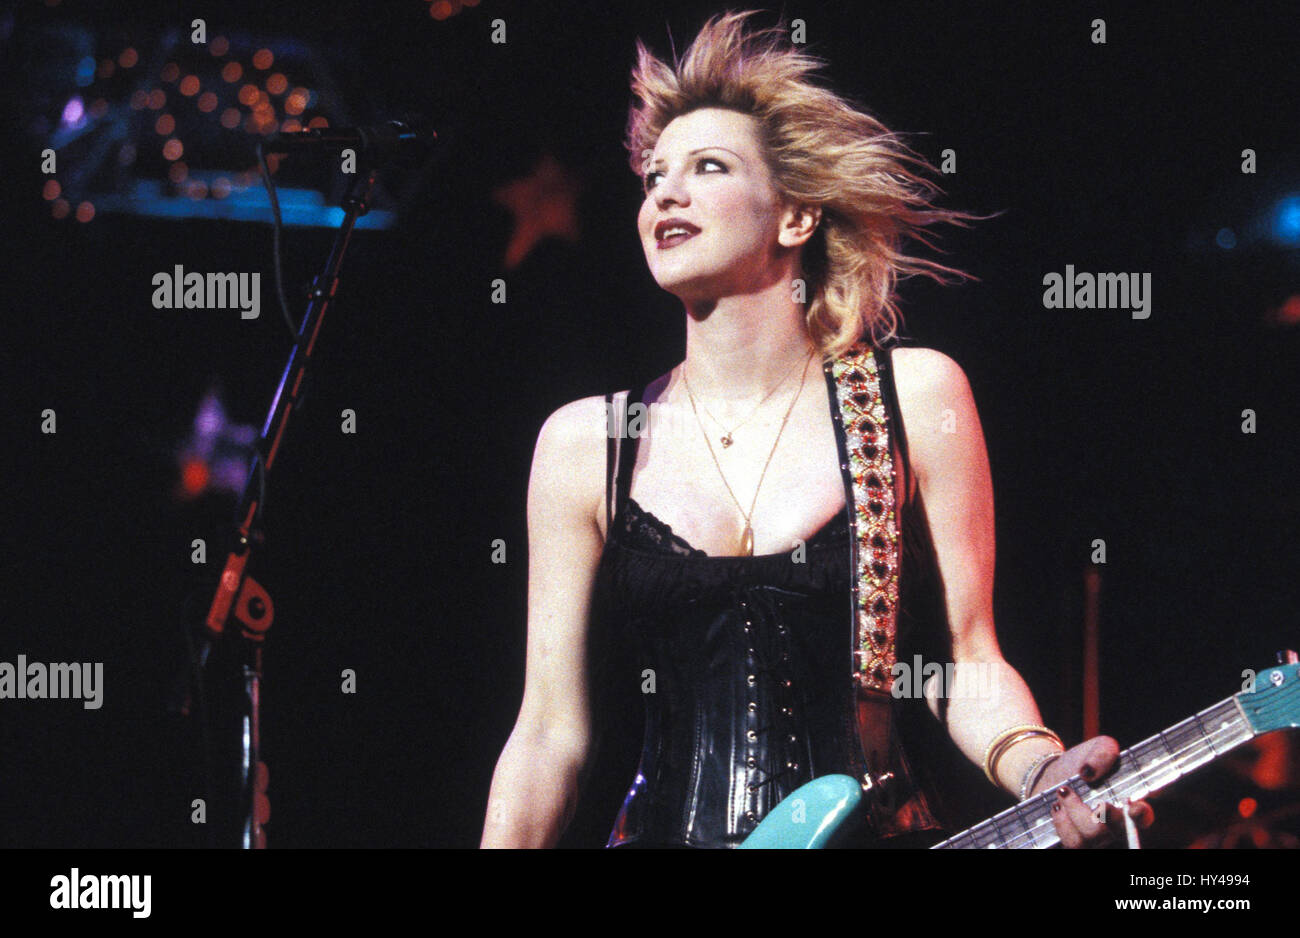 Courtney Love performing at Lollapalooza 1995 at Irvine Meadows Amp. in Irvine, CA. August 15, 1995.   Credit: Kevin - Stock Image